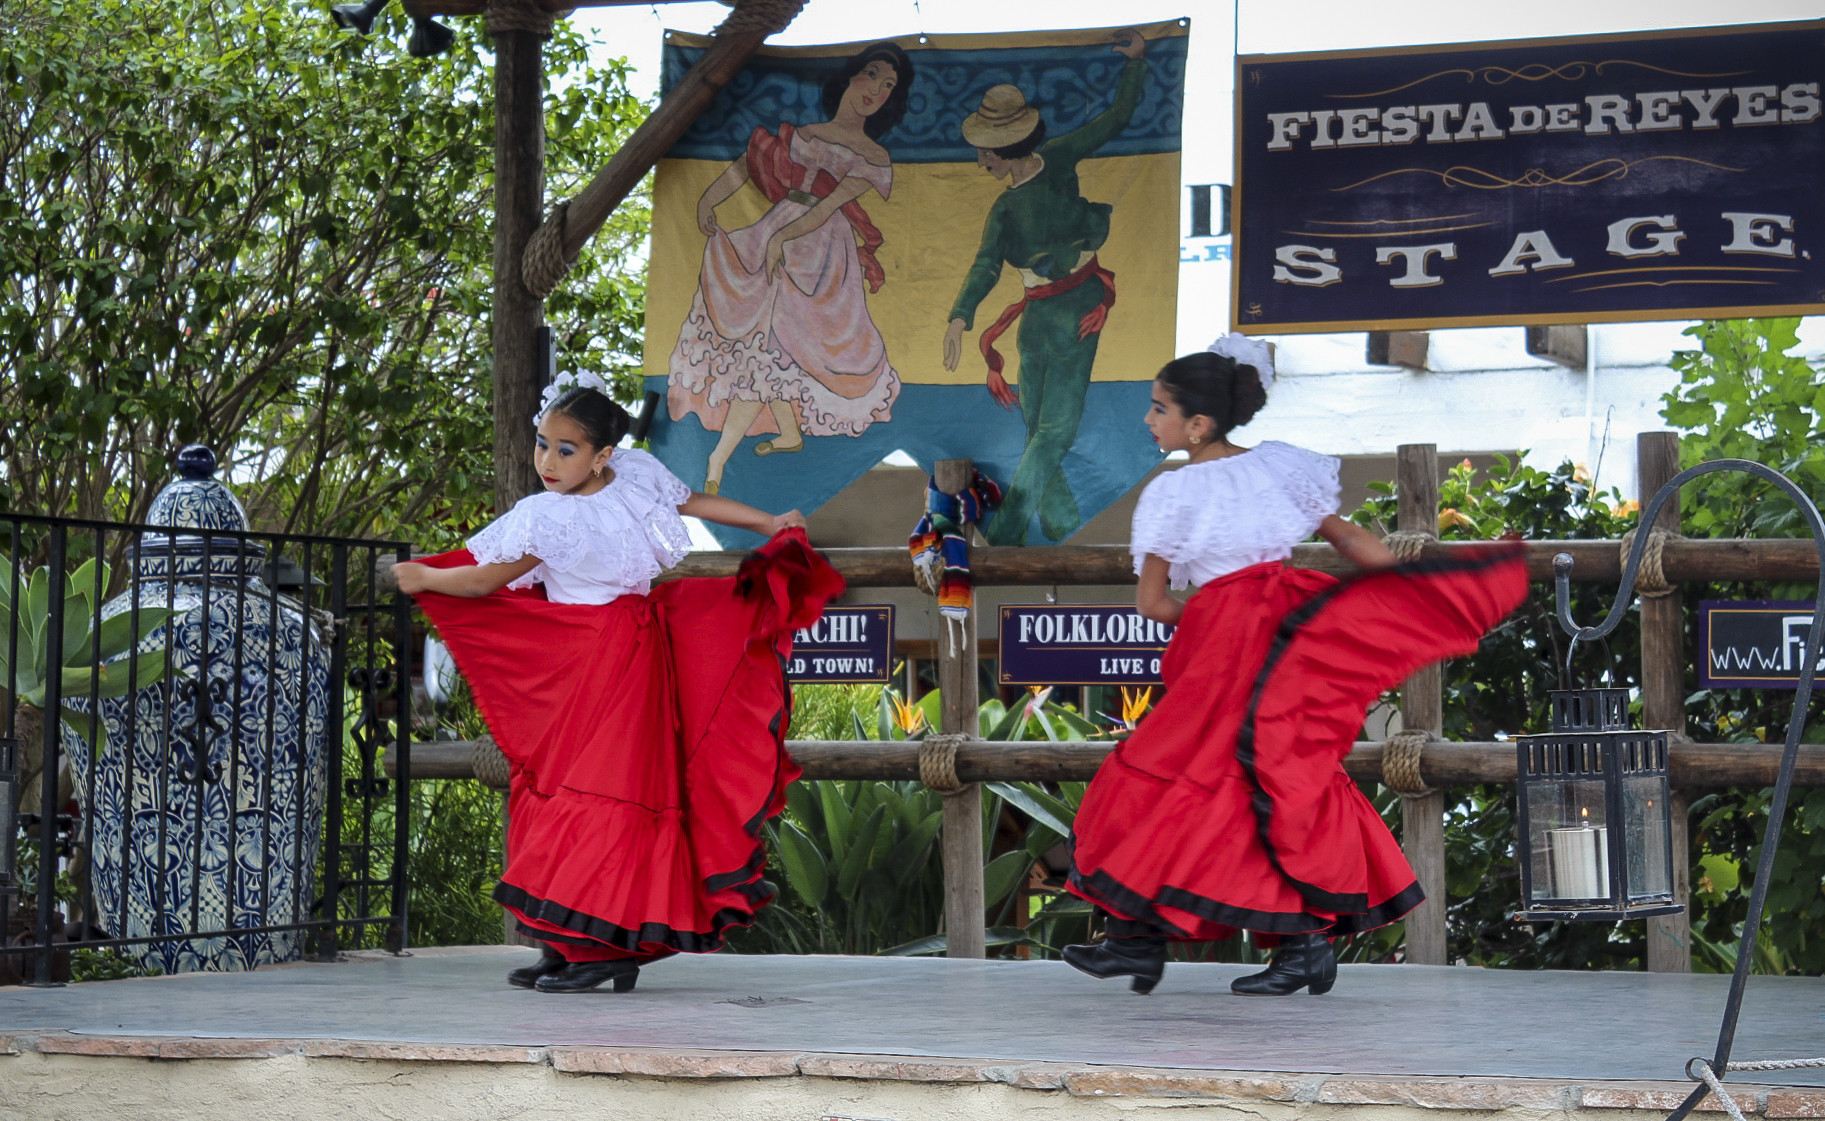 Young folklorico dancers perform in the courtyard of Fiesta de Reyes in San Diego's Old Town. Tacos and churros are just steps away.